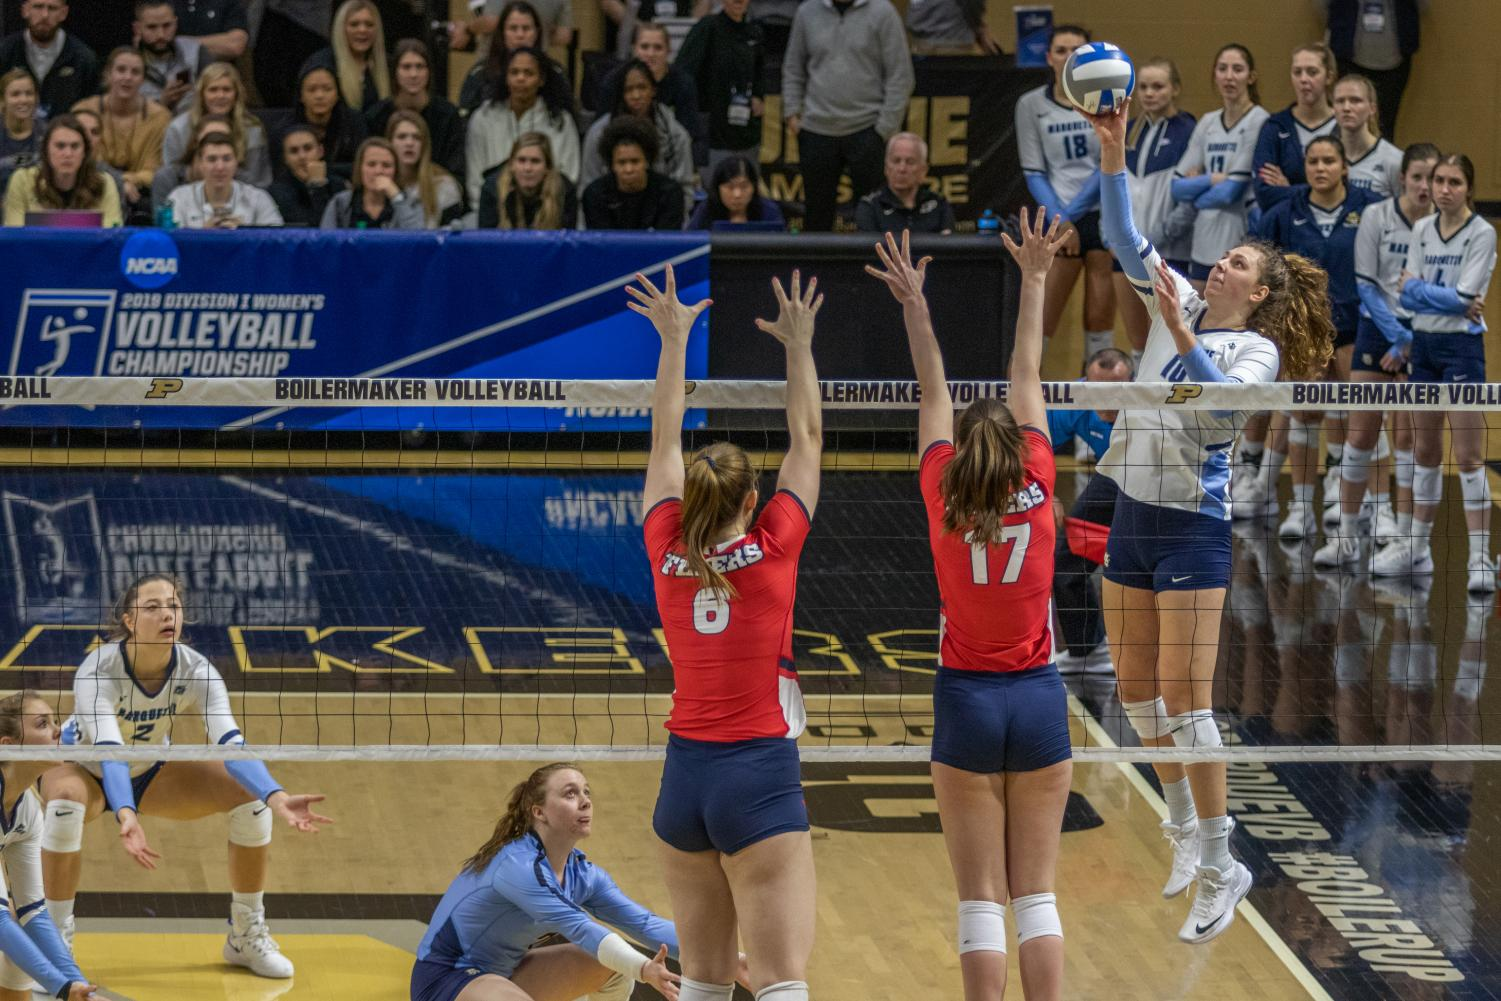 Senior outside hitter Allie Barber had a match-high 17 kills in Marquette's win over Dayton in the first round of the NCAA Tournament on Purdue's campus.